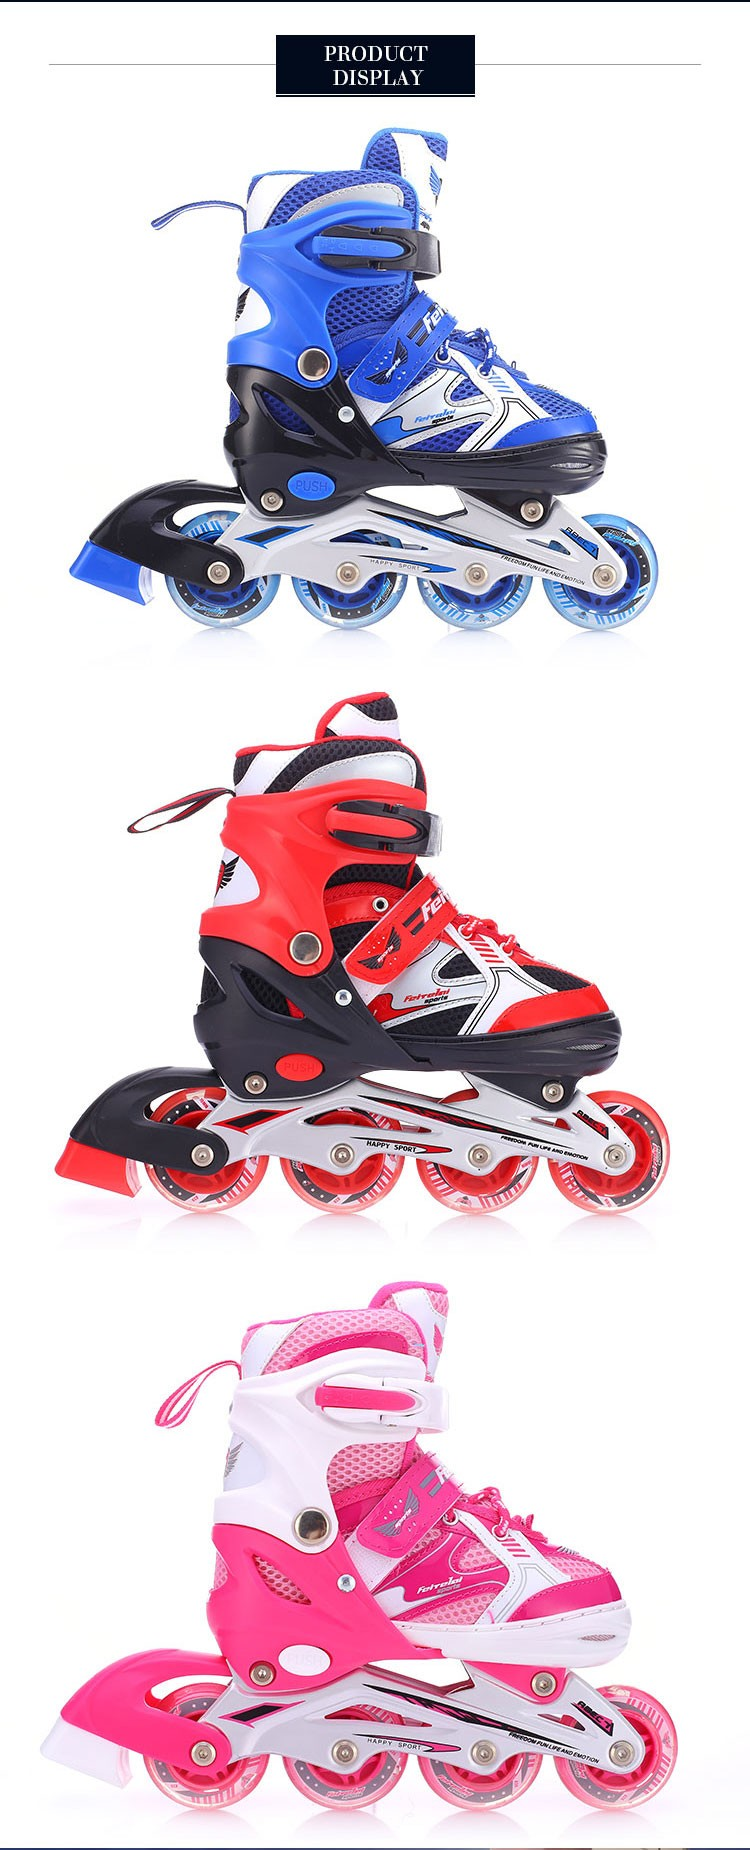 Skate shoes price - Best Price 4 Wheels Entertainment Kids Roller Skate Shoes